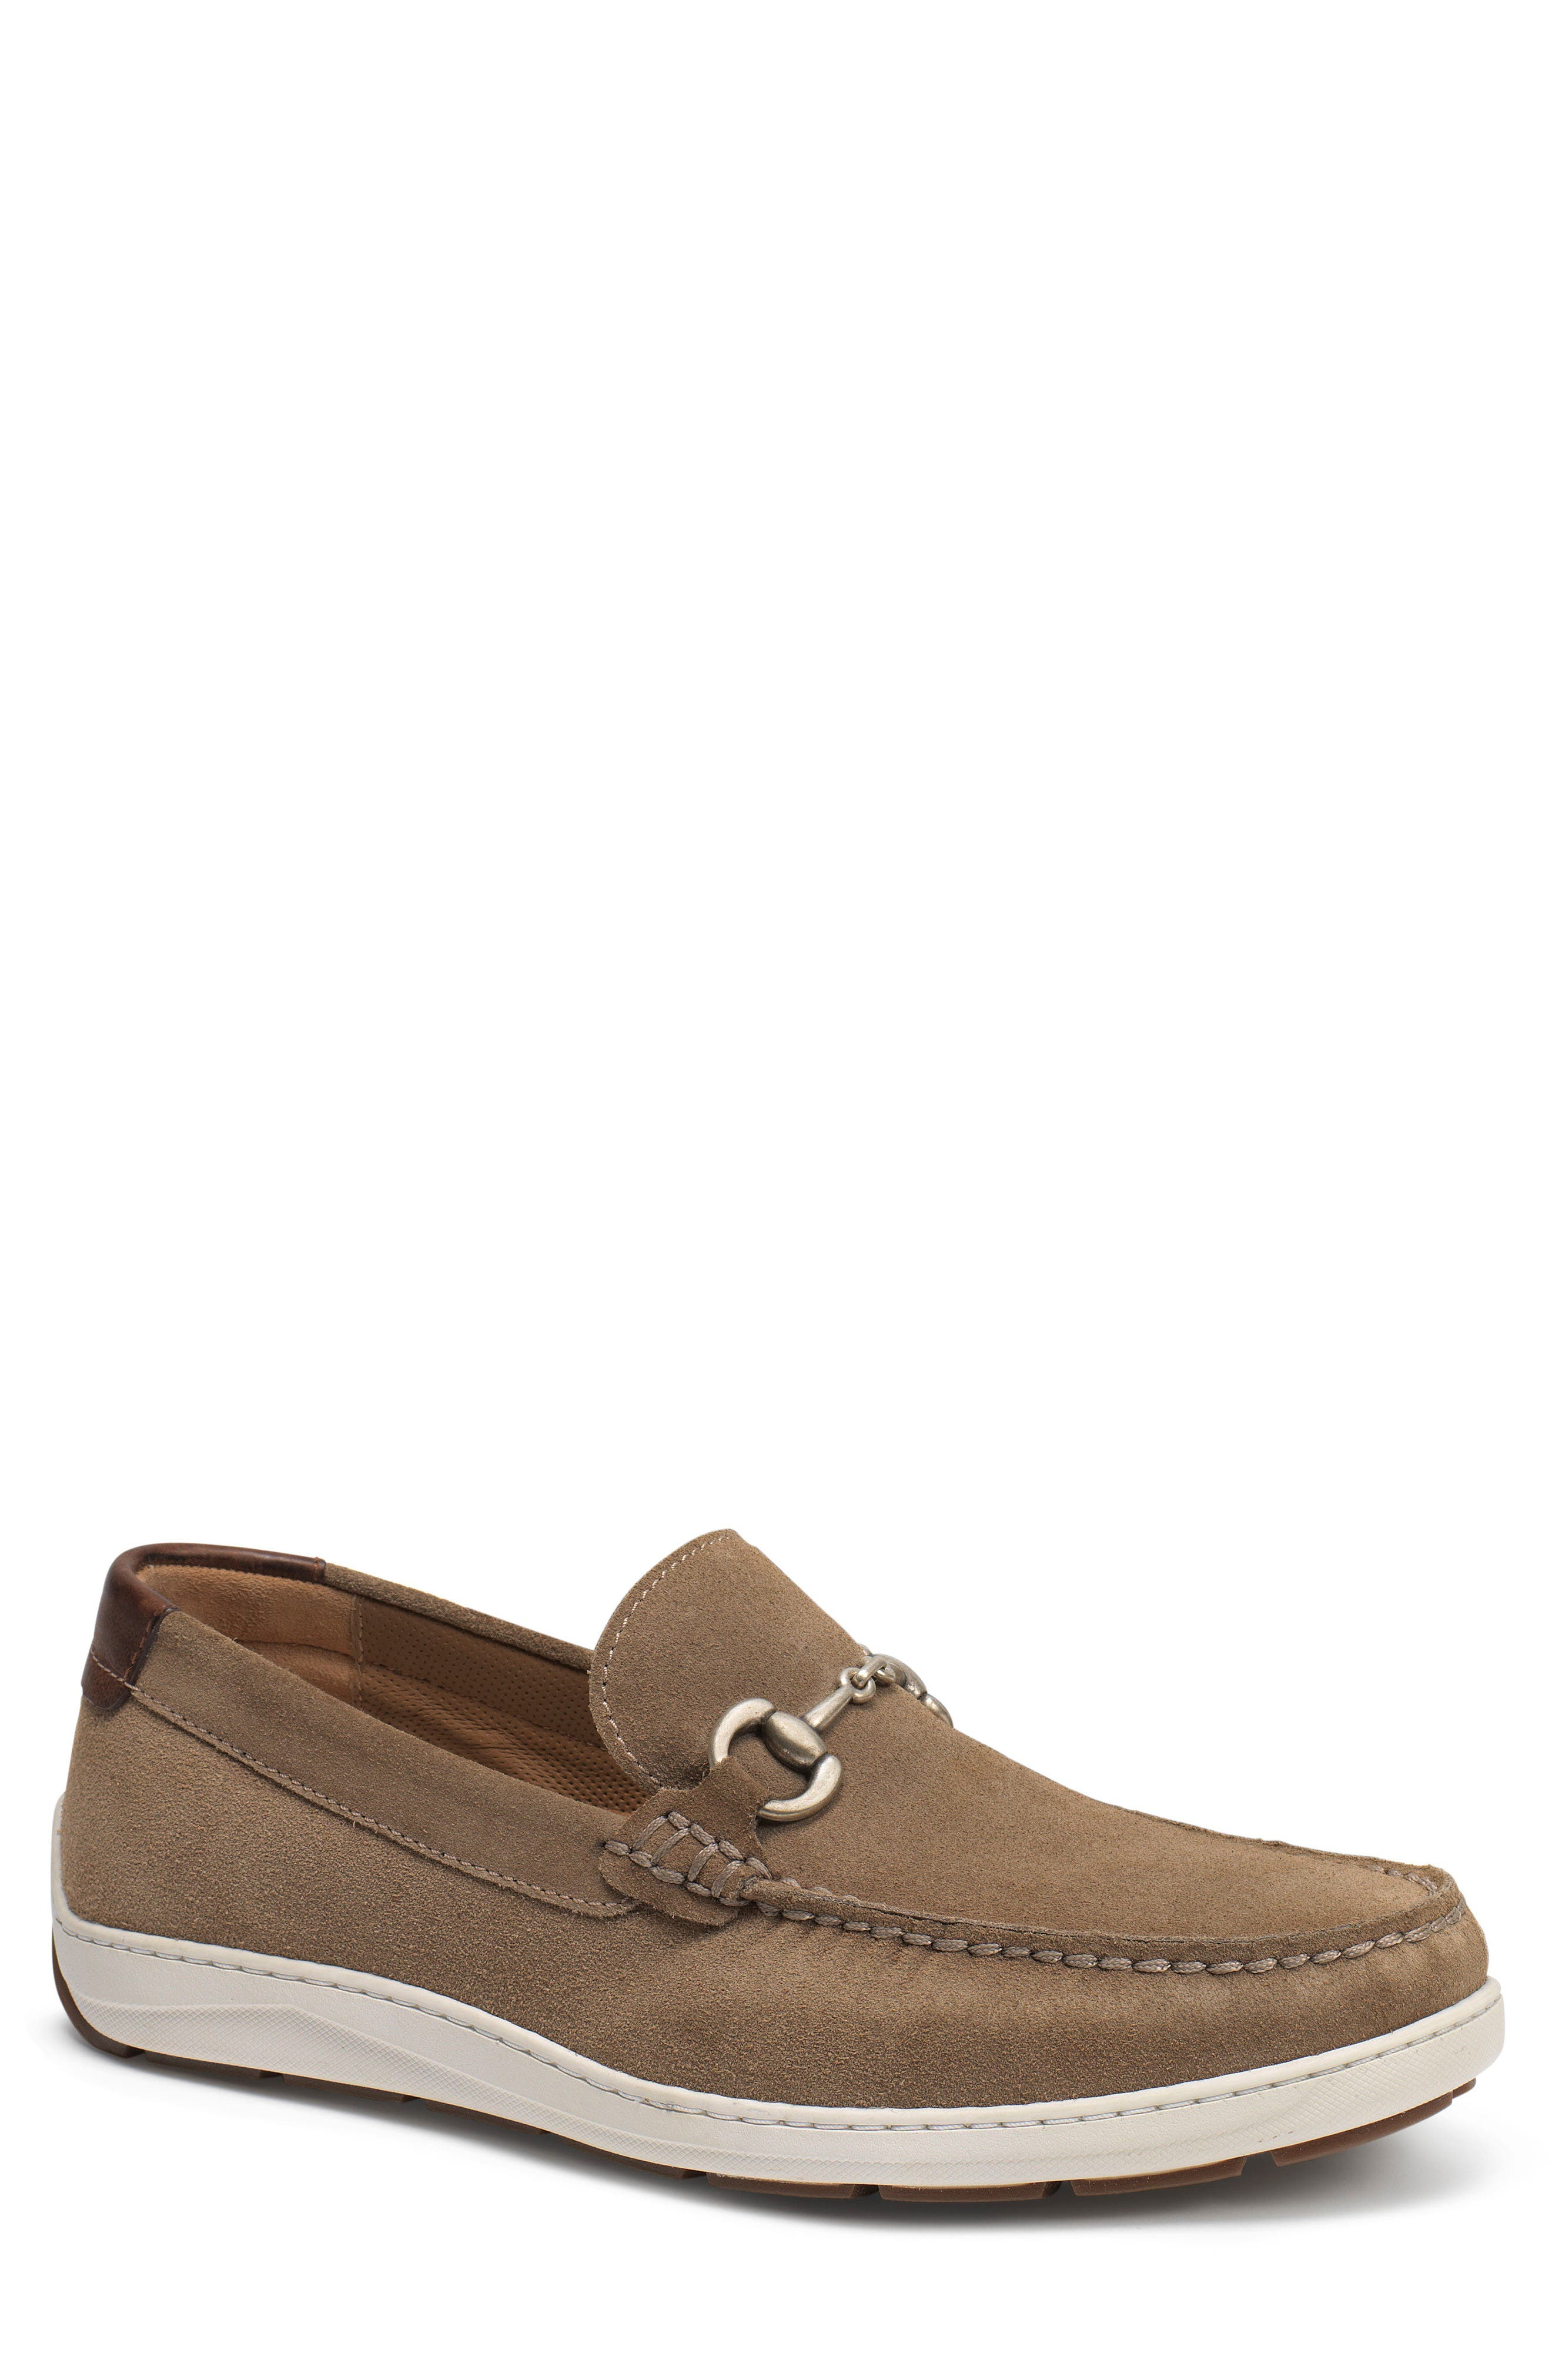 Stalworth Bit Loafer,                         Main,                         color, Taupe Leather